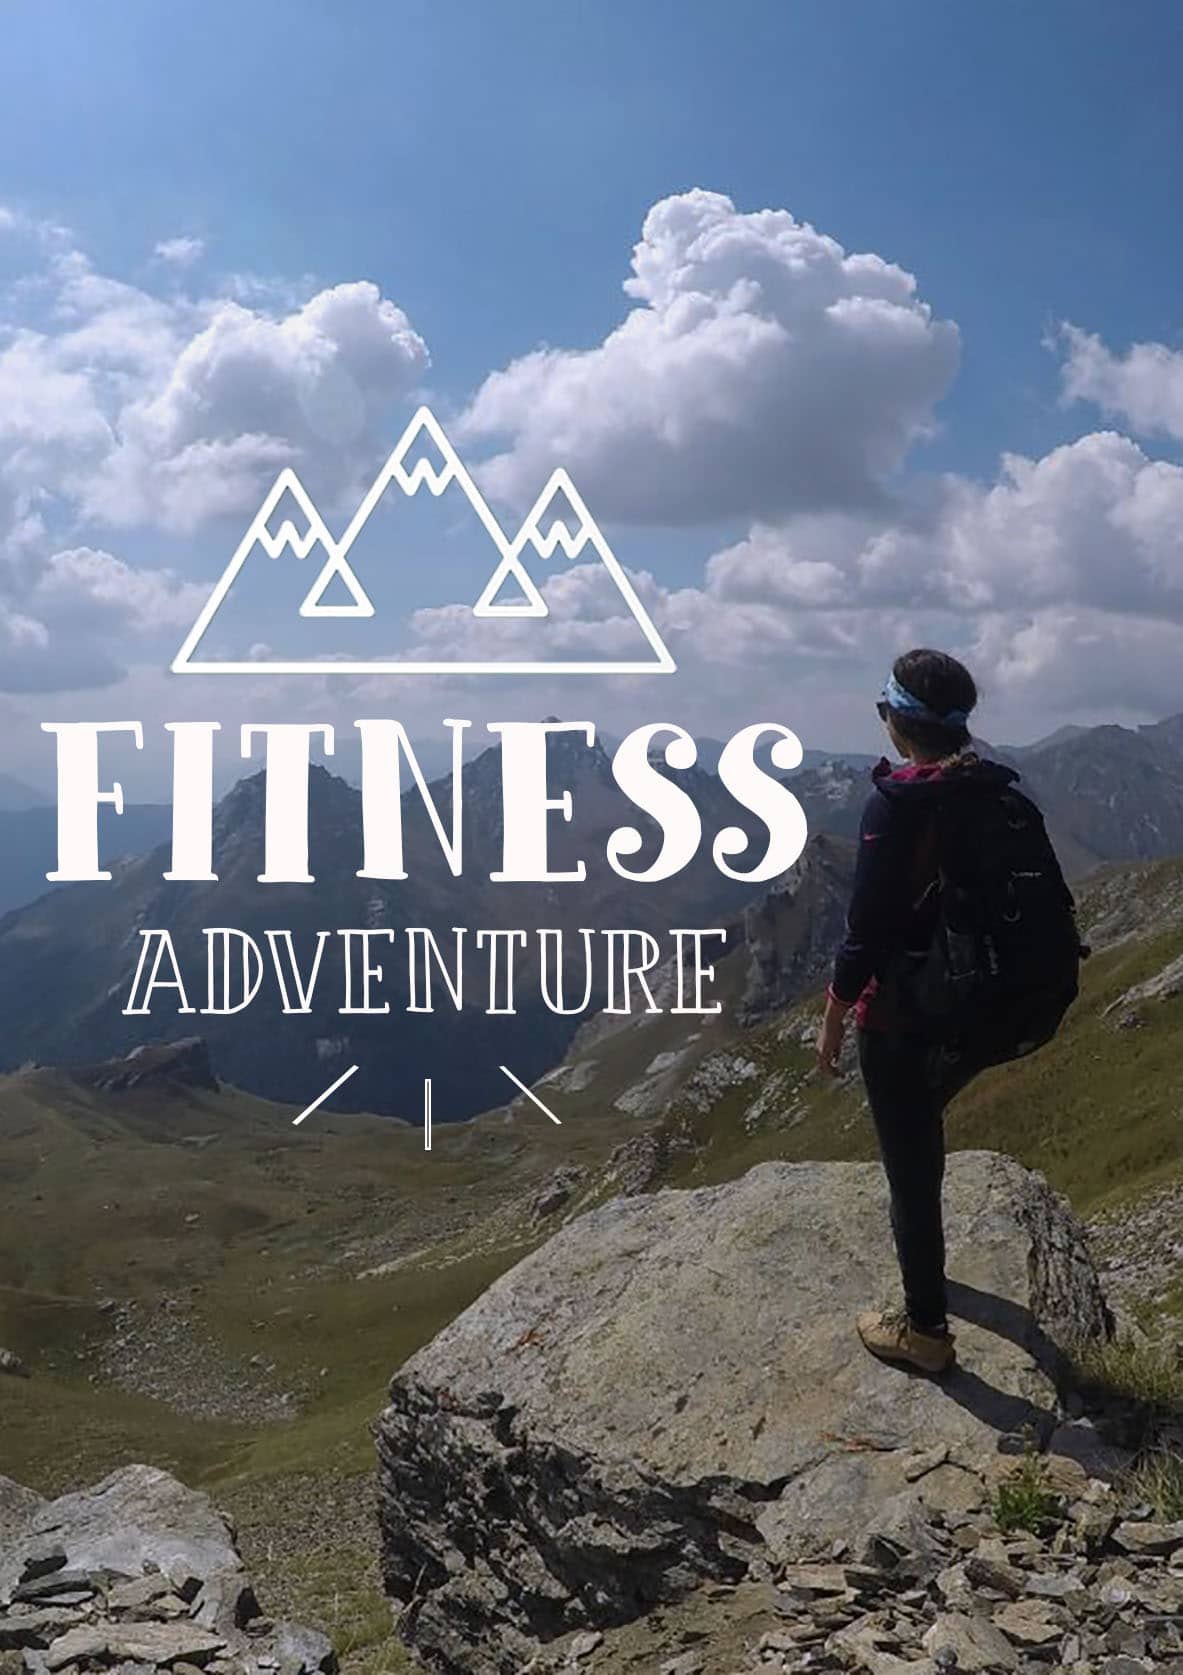 The Best Hiking Tips To Get Fit On The Trail - Hiking For Beginners Fitness